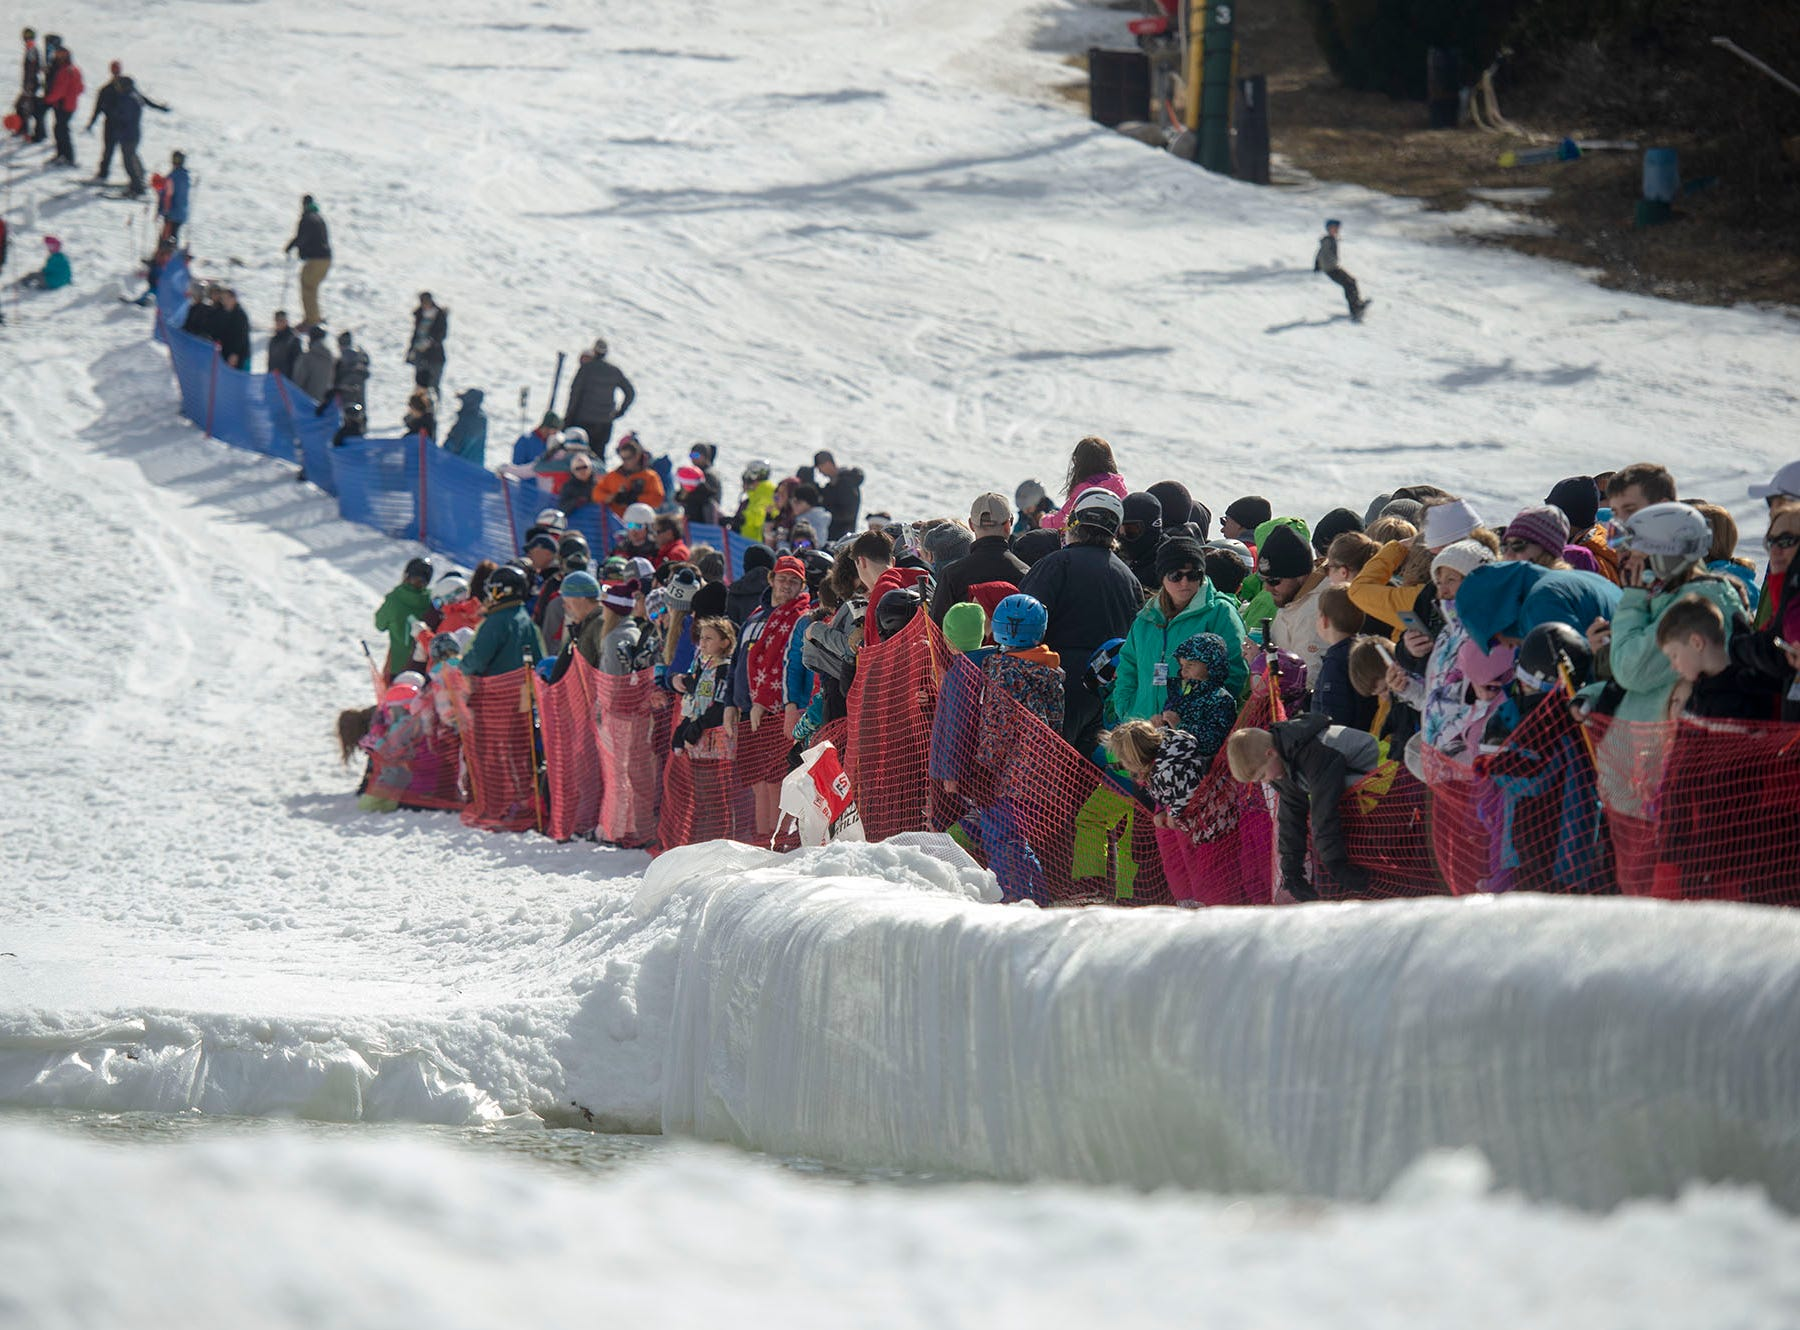 Hundreds of spectators lined both sides of the pond skimming run at Roundtop Mountain Resort on Saturday, March 16, 2019.